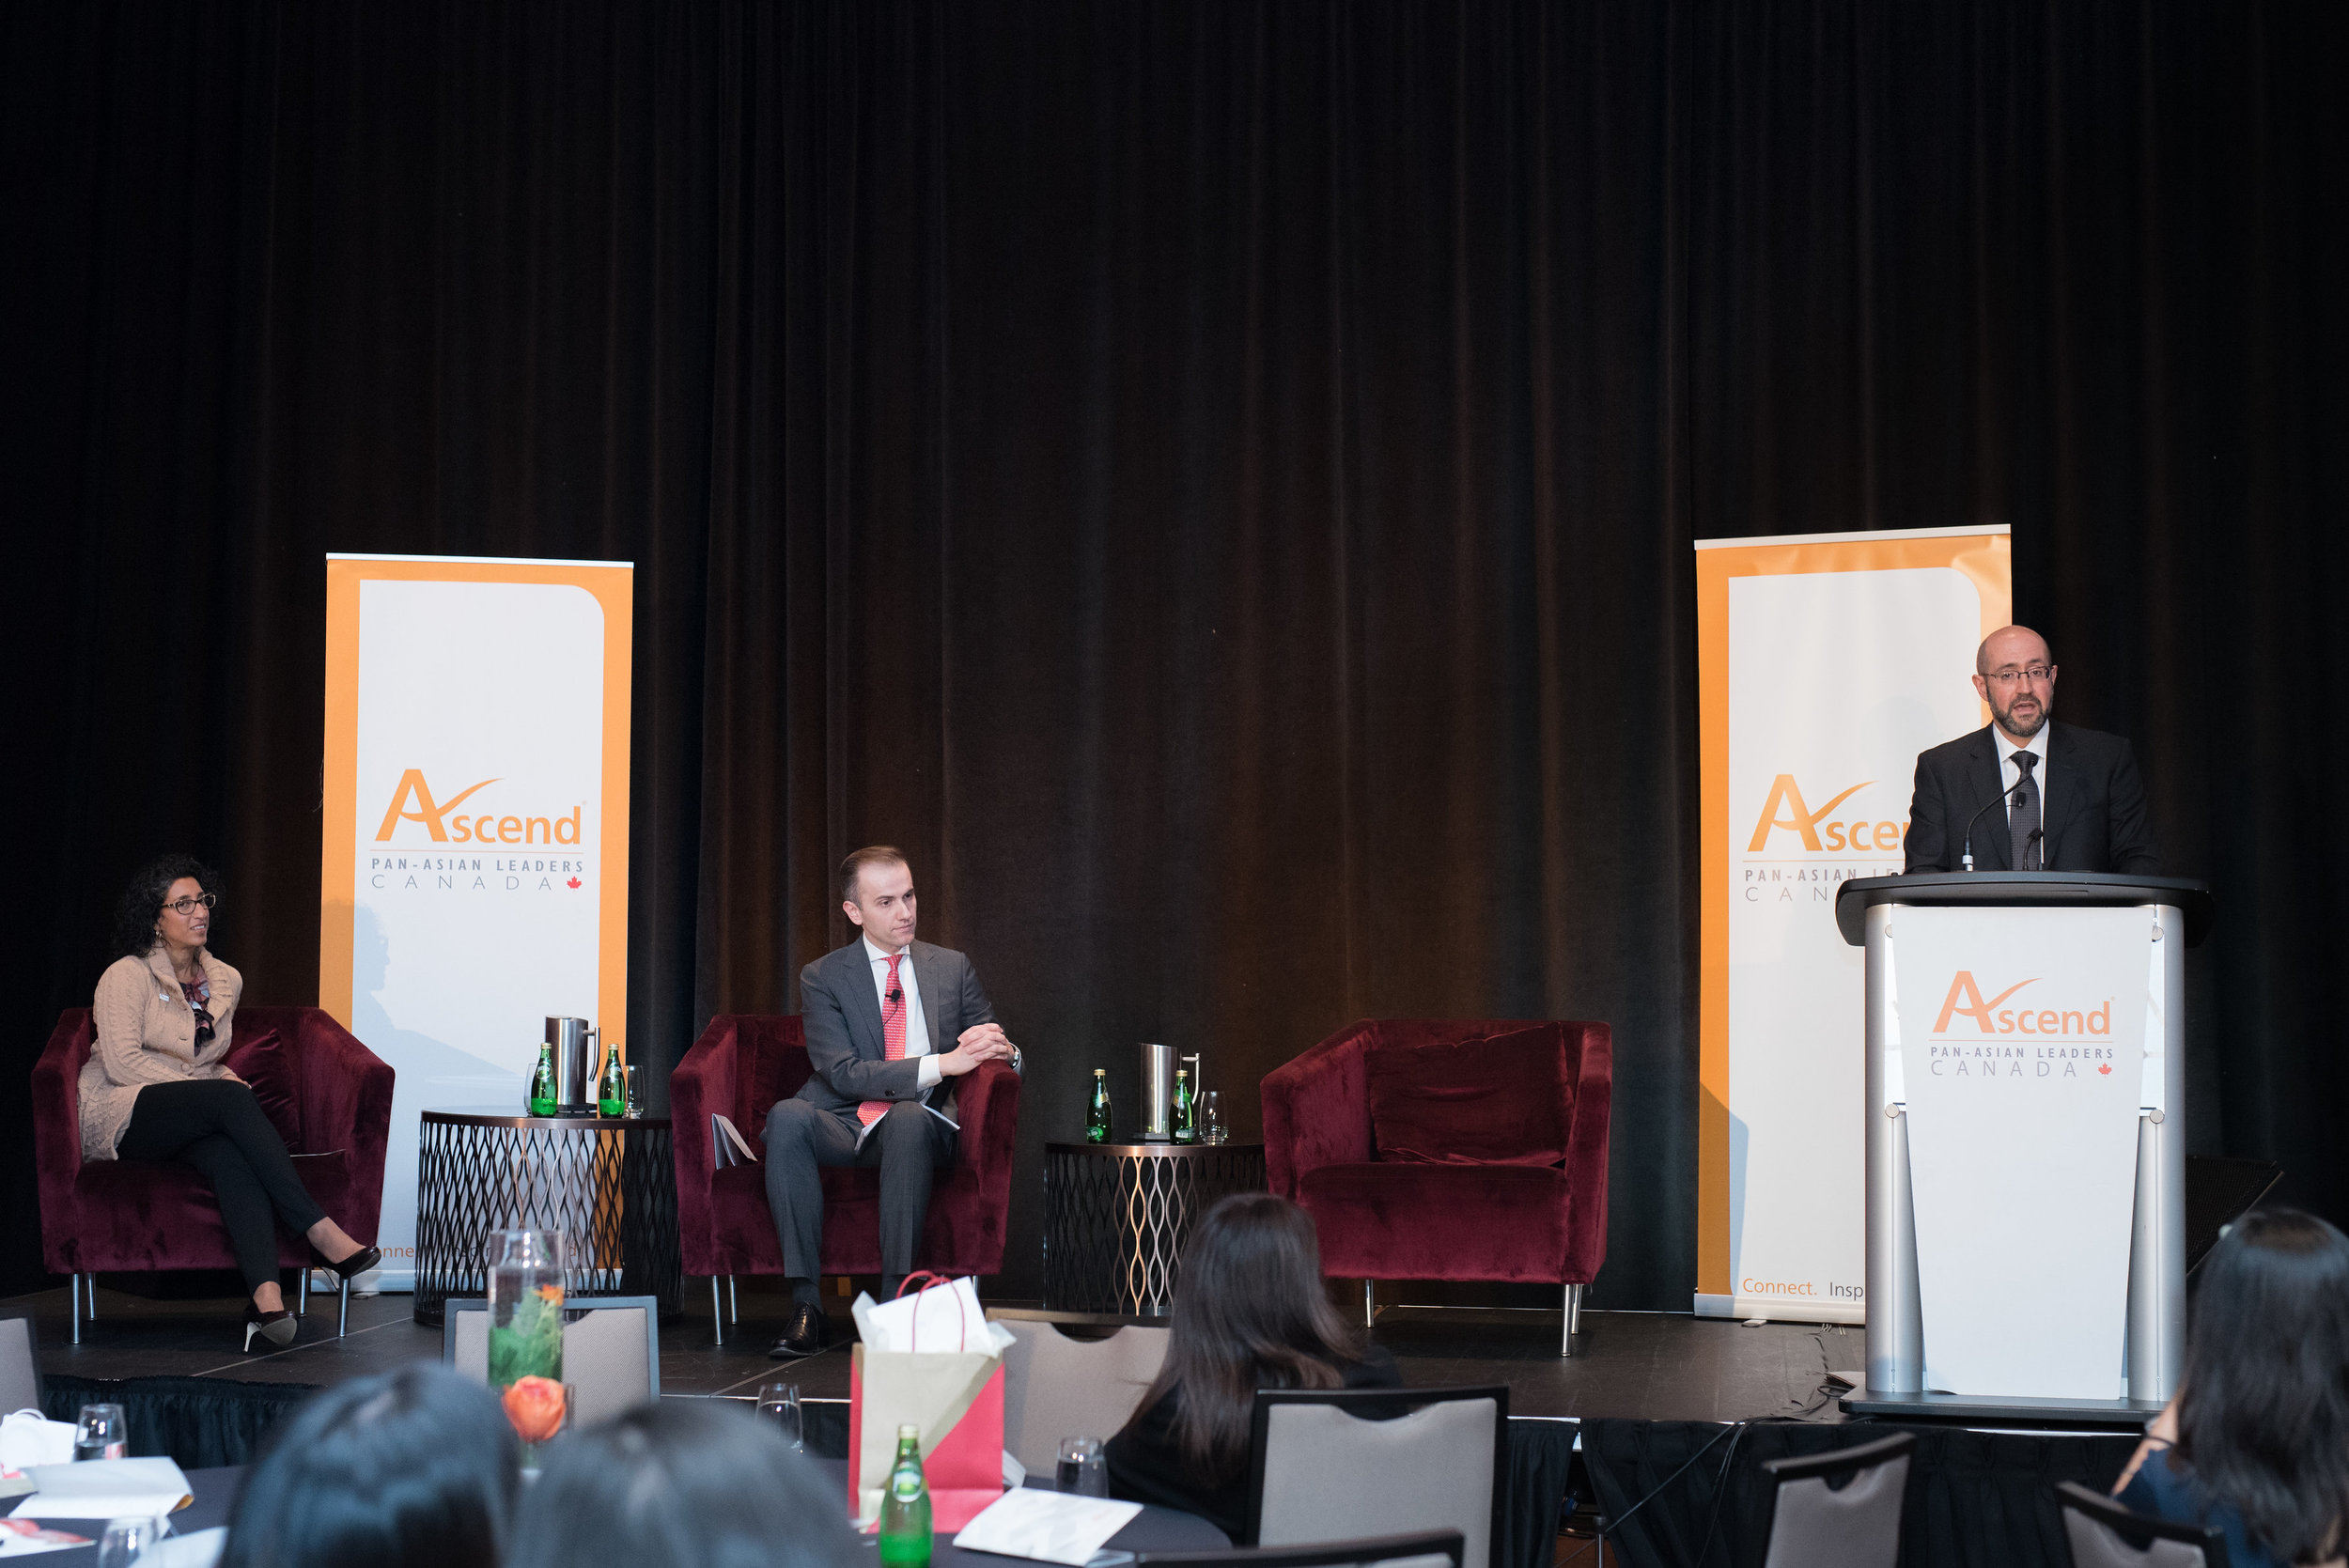 Jay Rosenzweig Speaking On Leadership & Diversity At Ascend Pan Asian Gala Dinner.jpg